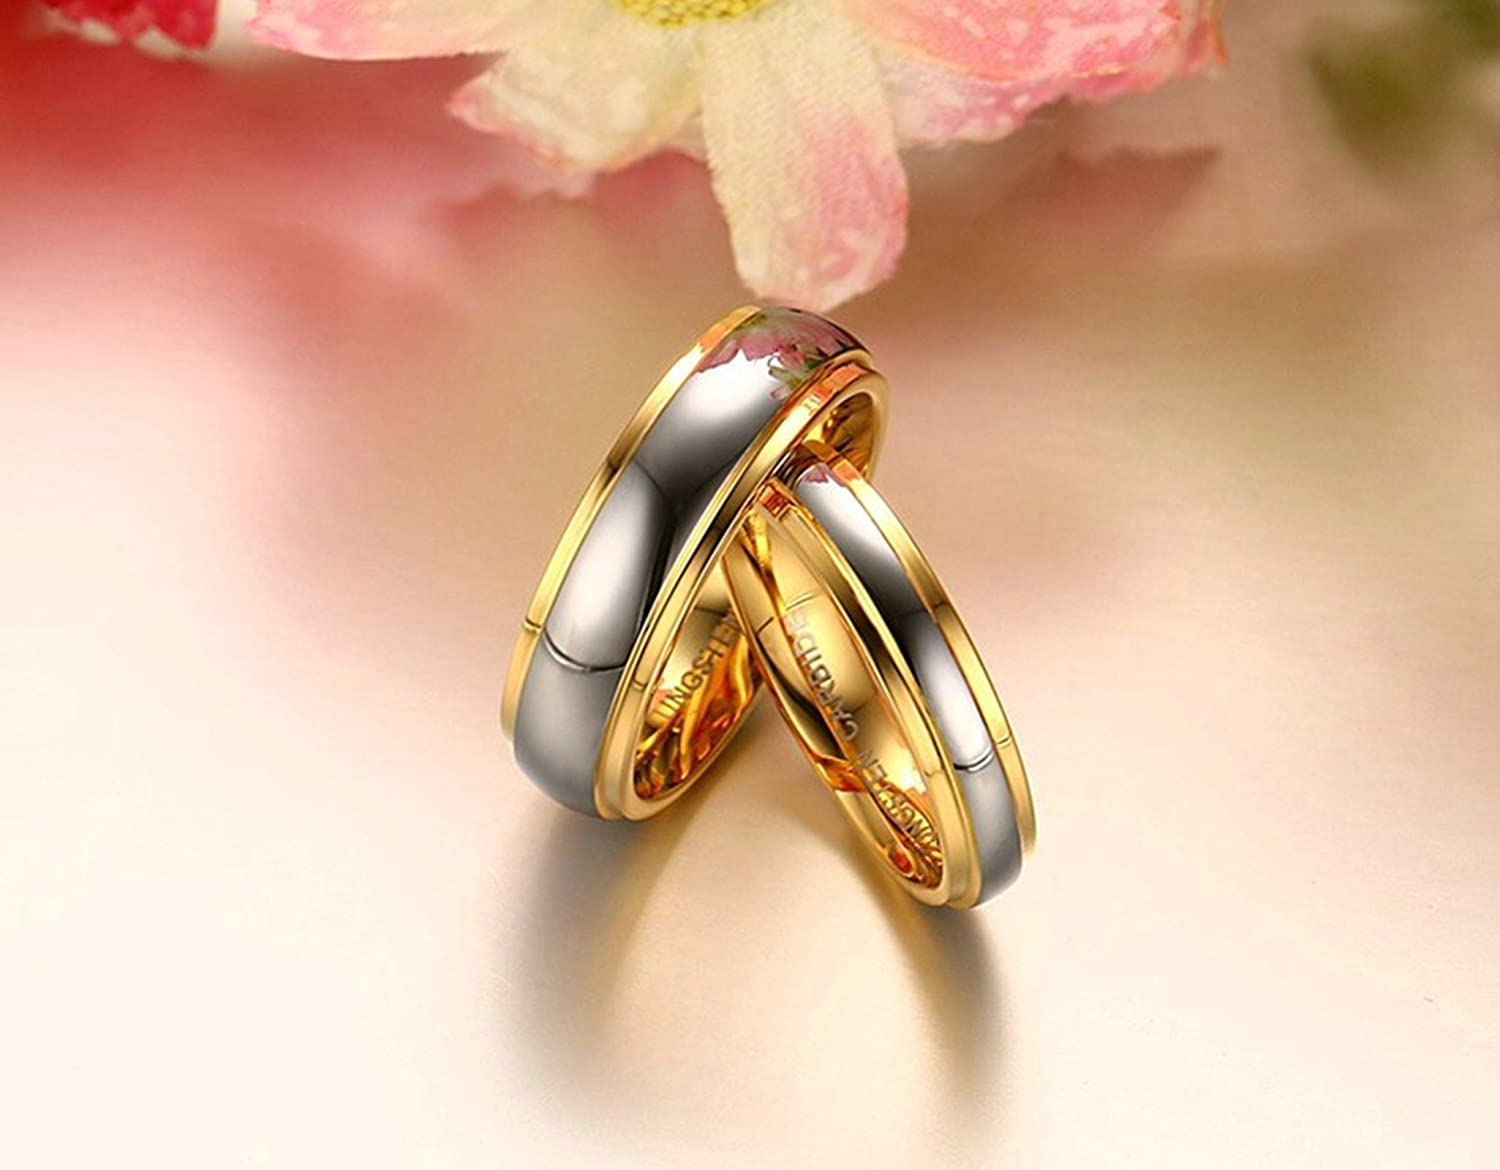 Aooaz Jewelry 2 Pcs Women Men Ring Stainless Steel Gold Rings for His and Hers /& Laser Engraving Free